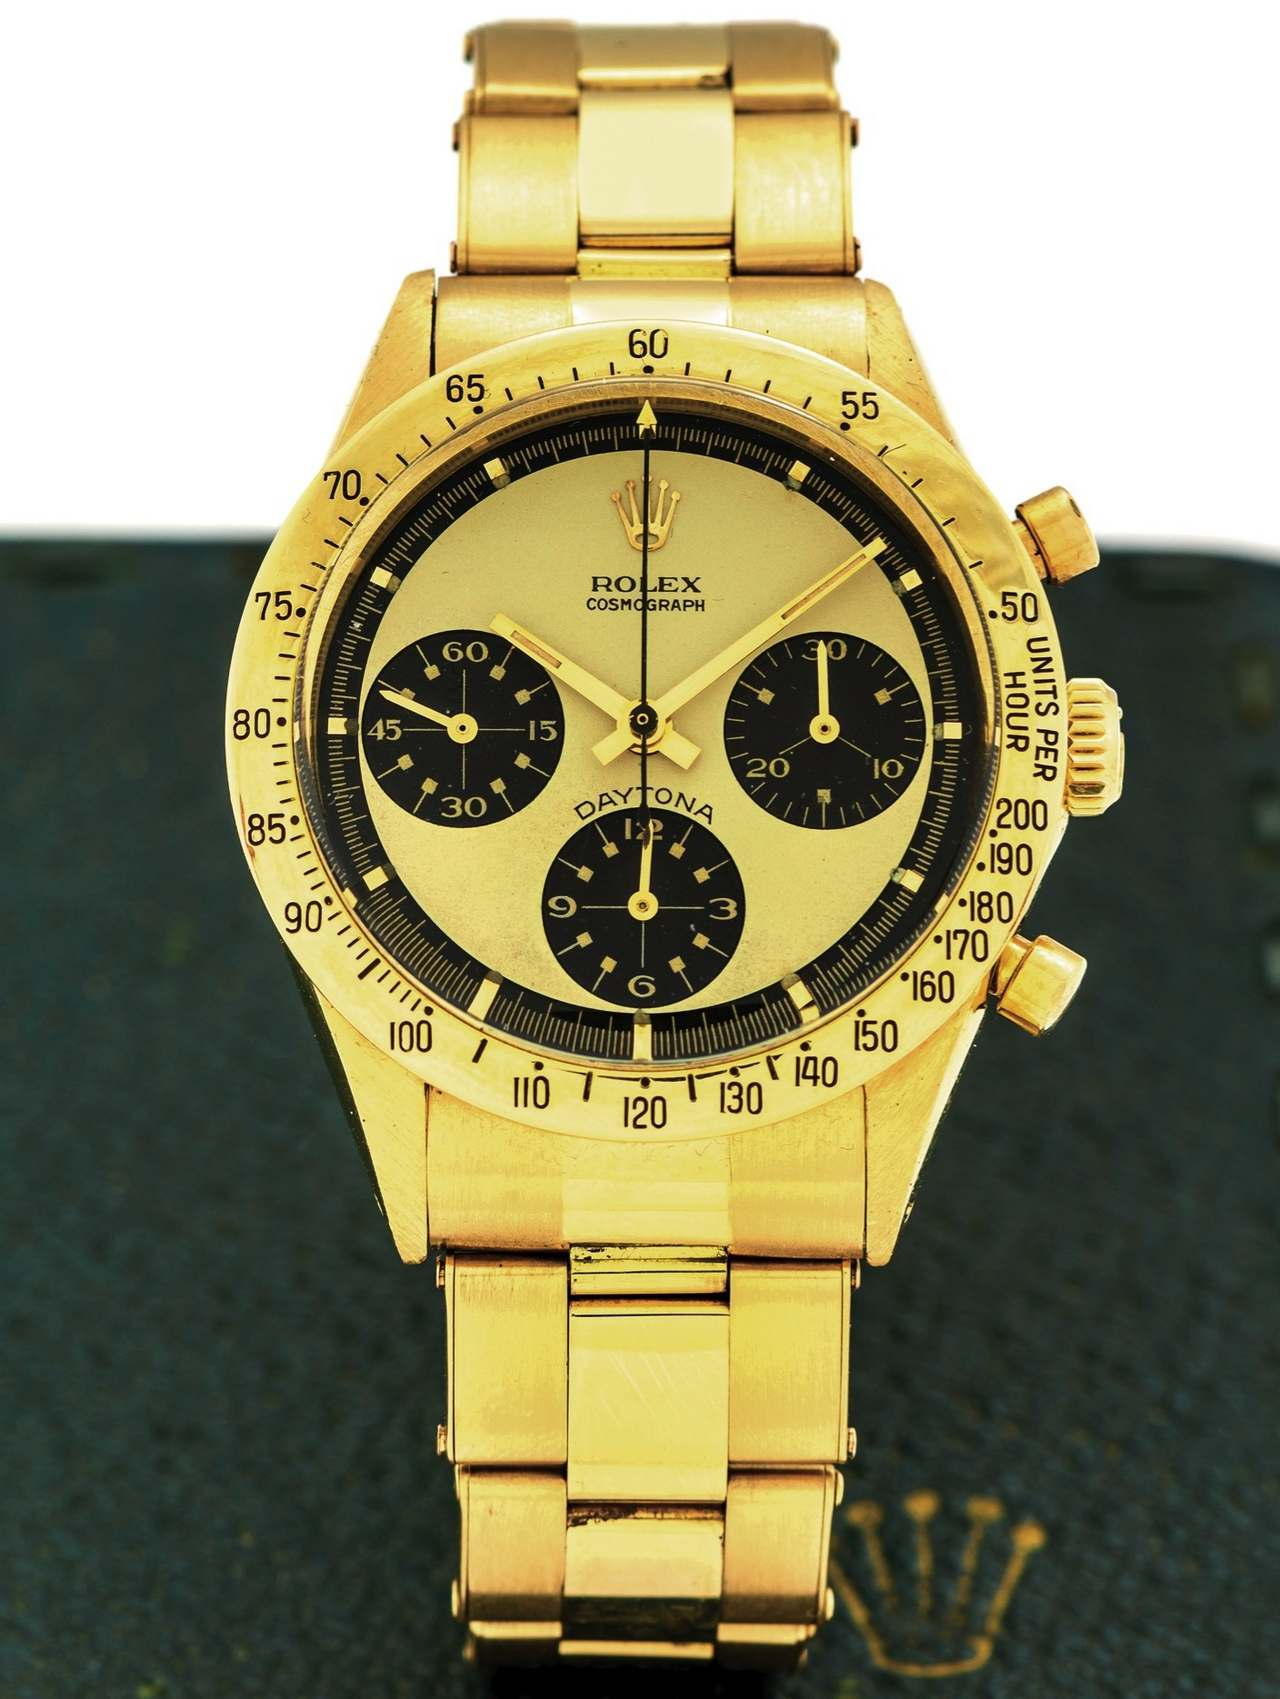 ROLEX 6239 DAYTONA PAUL NEWMAN 18K GOLD Rolex, Cosmograph, Daytona, case No. 1938065, Ref. 6239_source_antiquorum_0-100